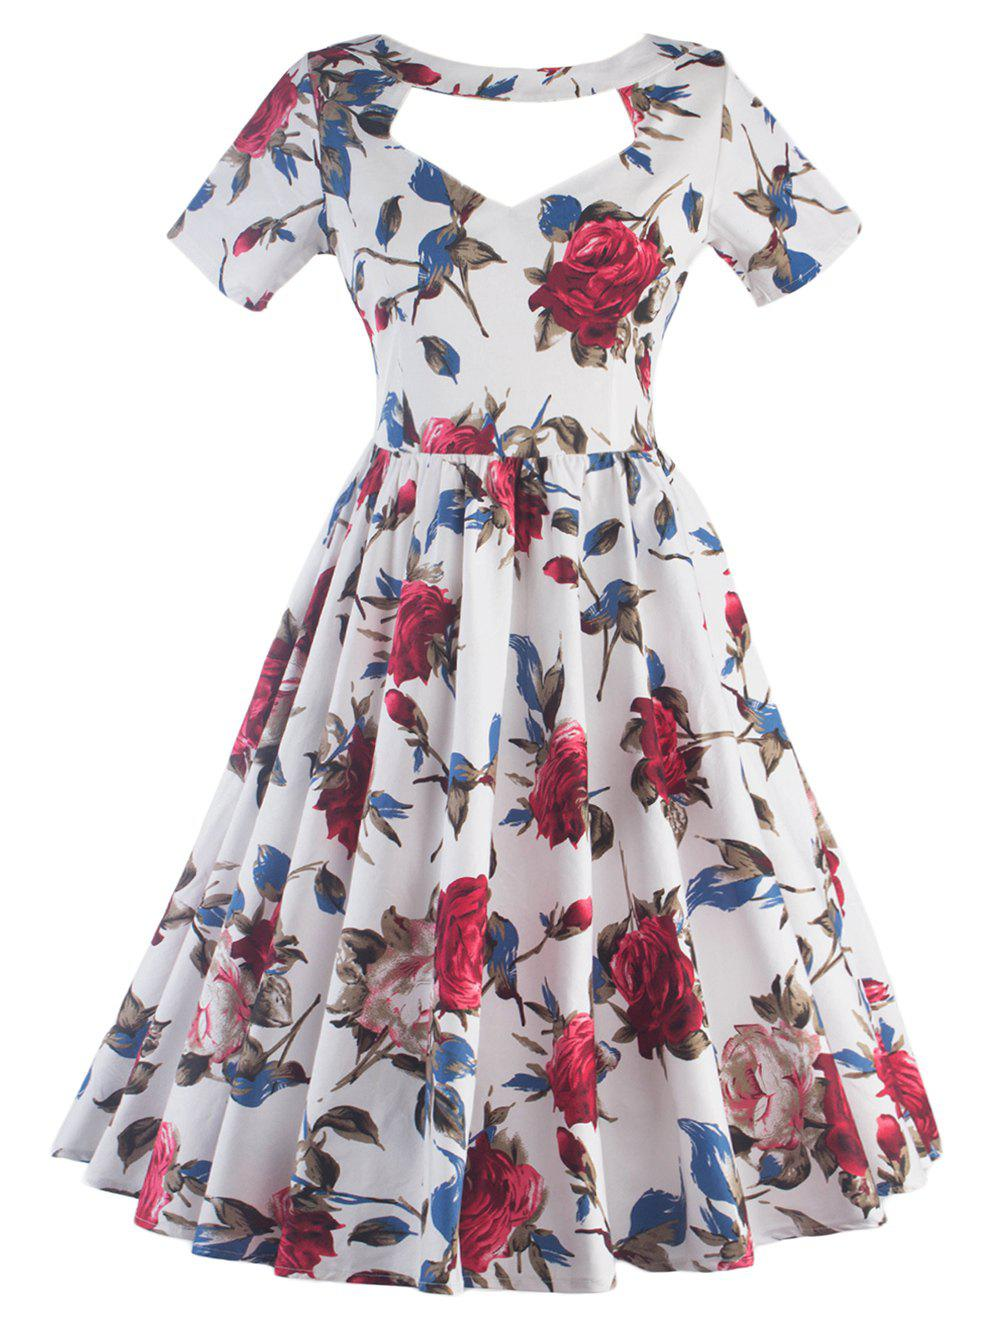 2018 Halter Hollow Out Floral Print Pin Up Dress WHITE XL In Vintage ...